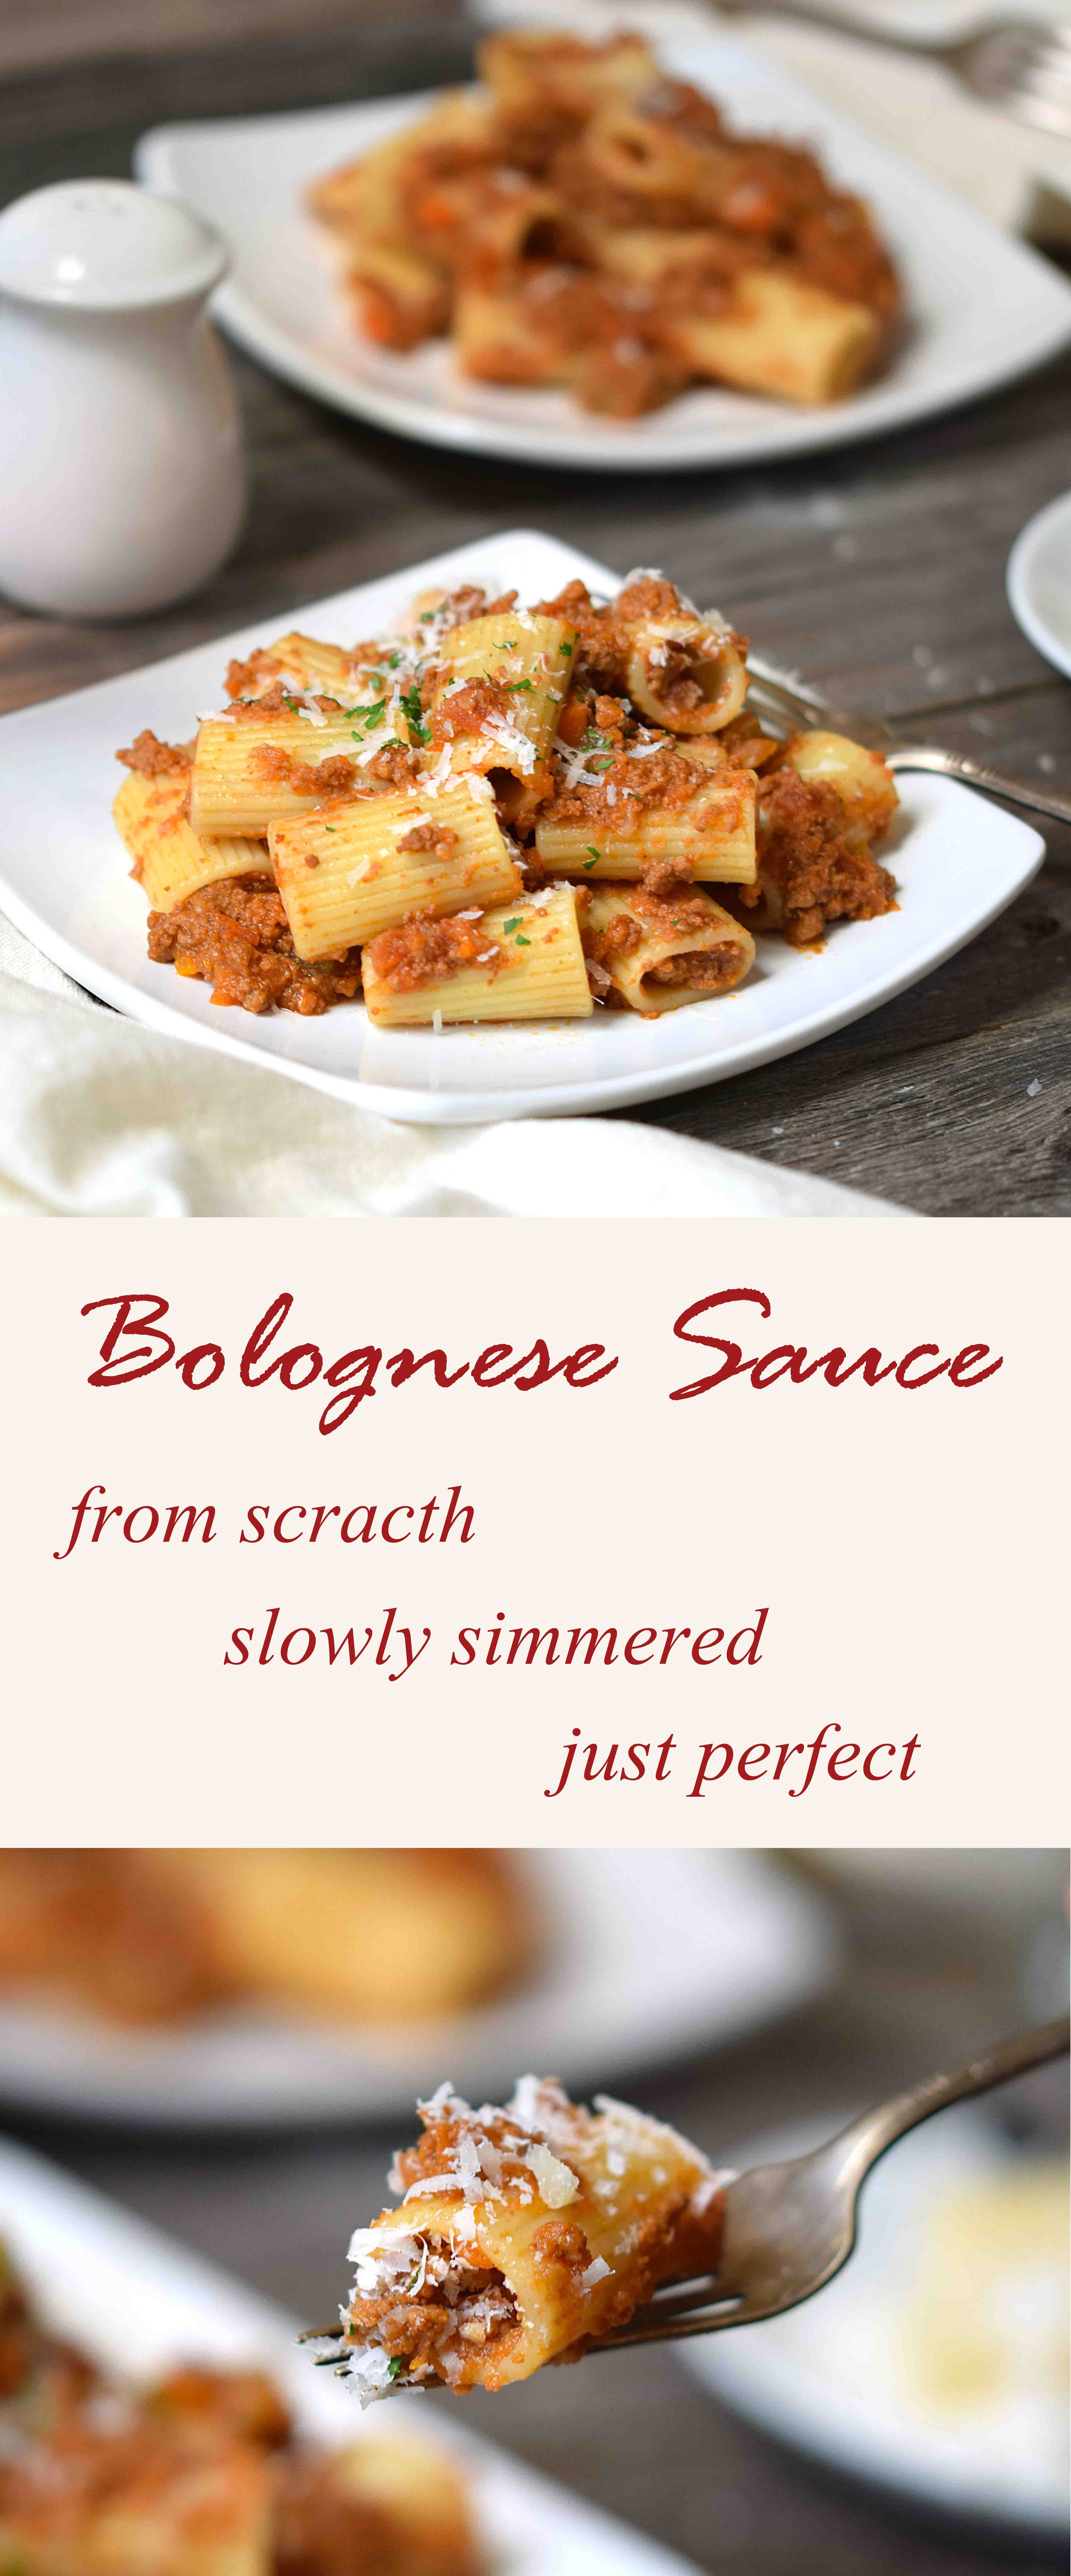 how to prepare bolognese sauce